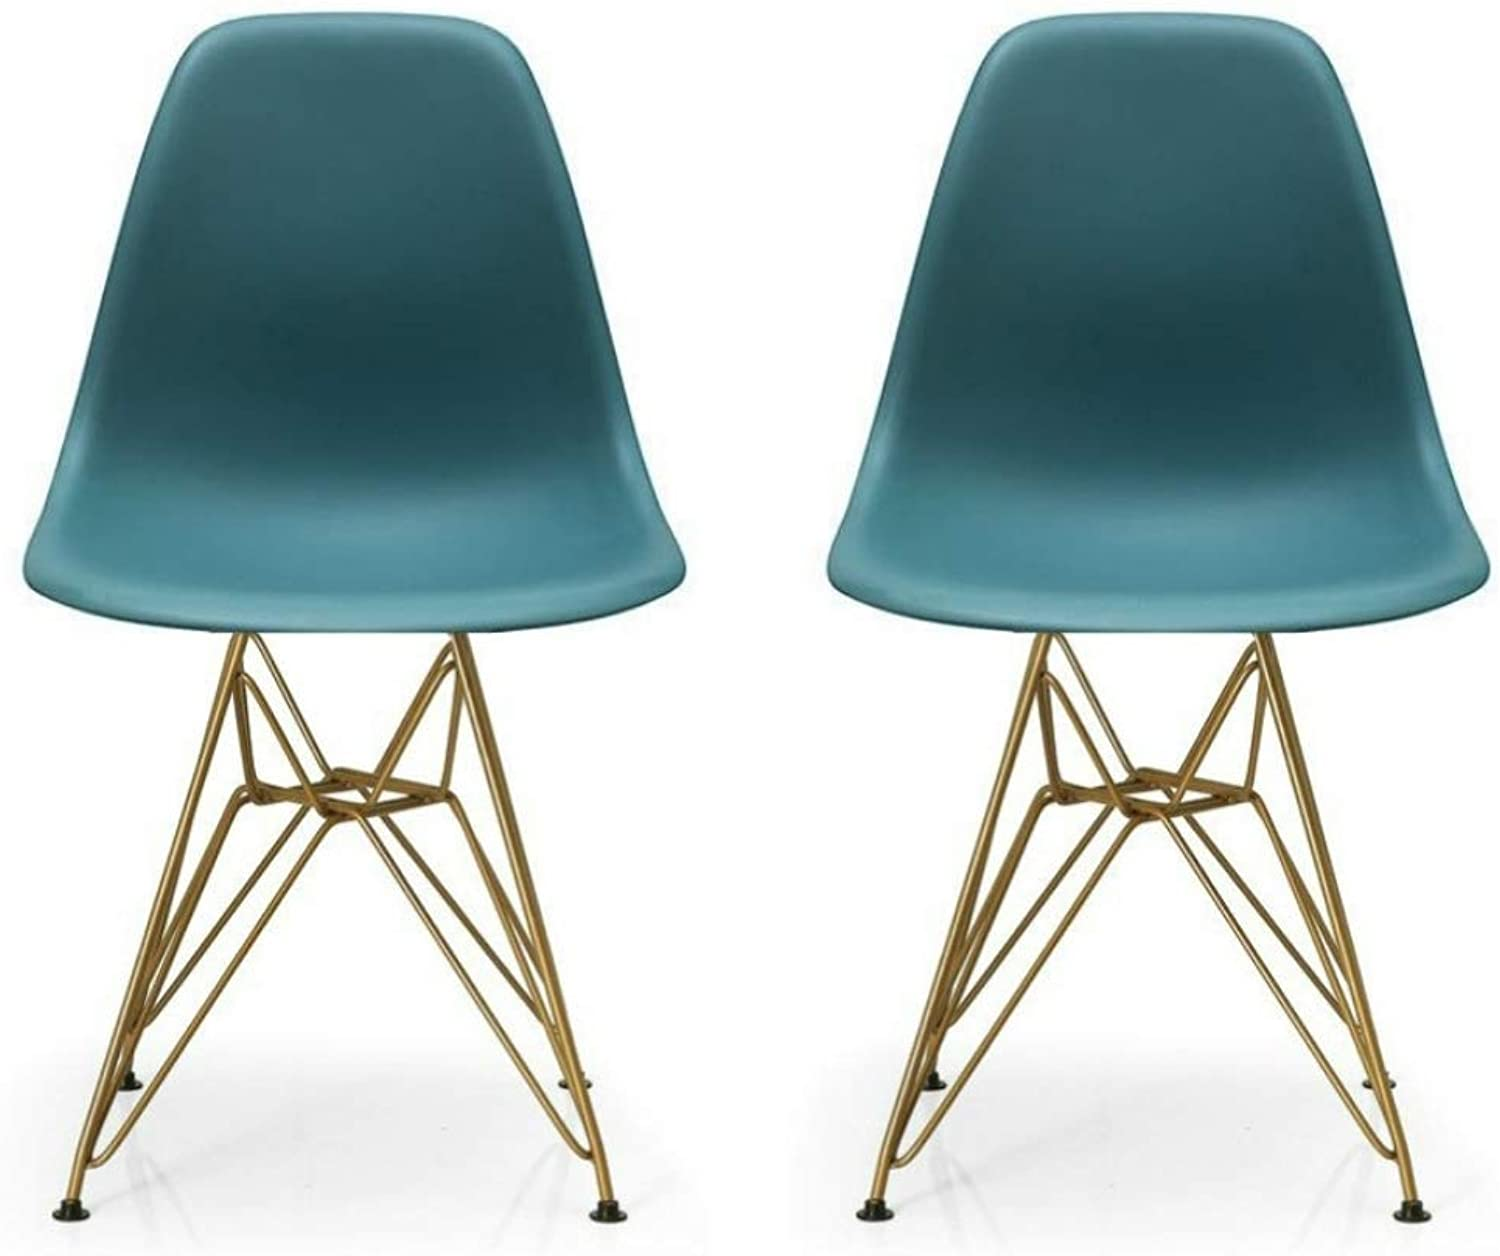 silver Import Eames Style Side Dining Chair with gold Legs Eiffel Dining Room Chair in Navy bluee Set of 2